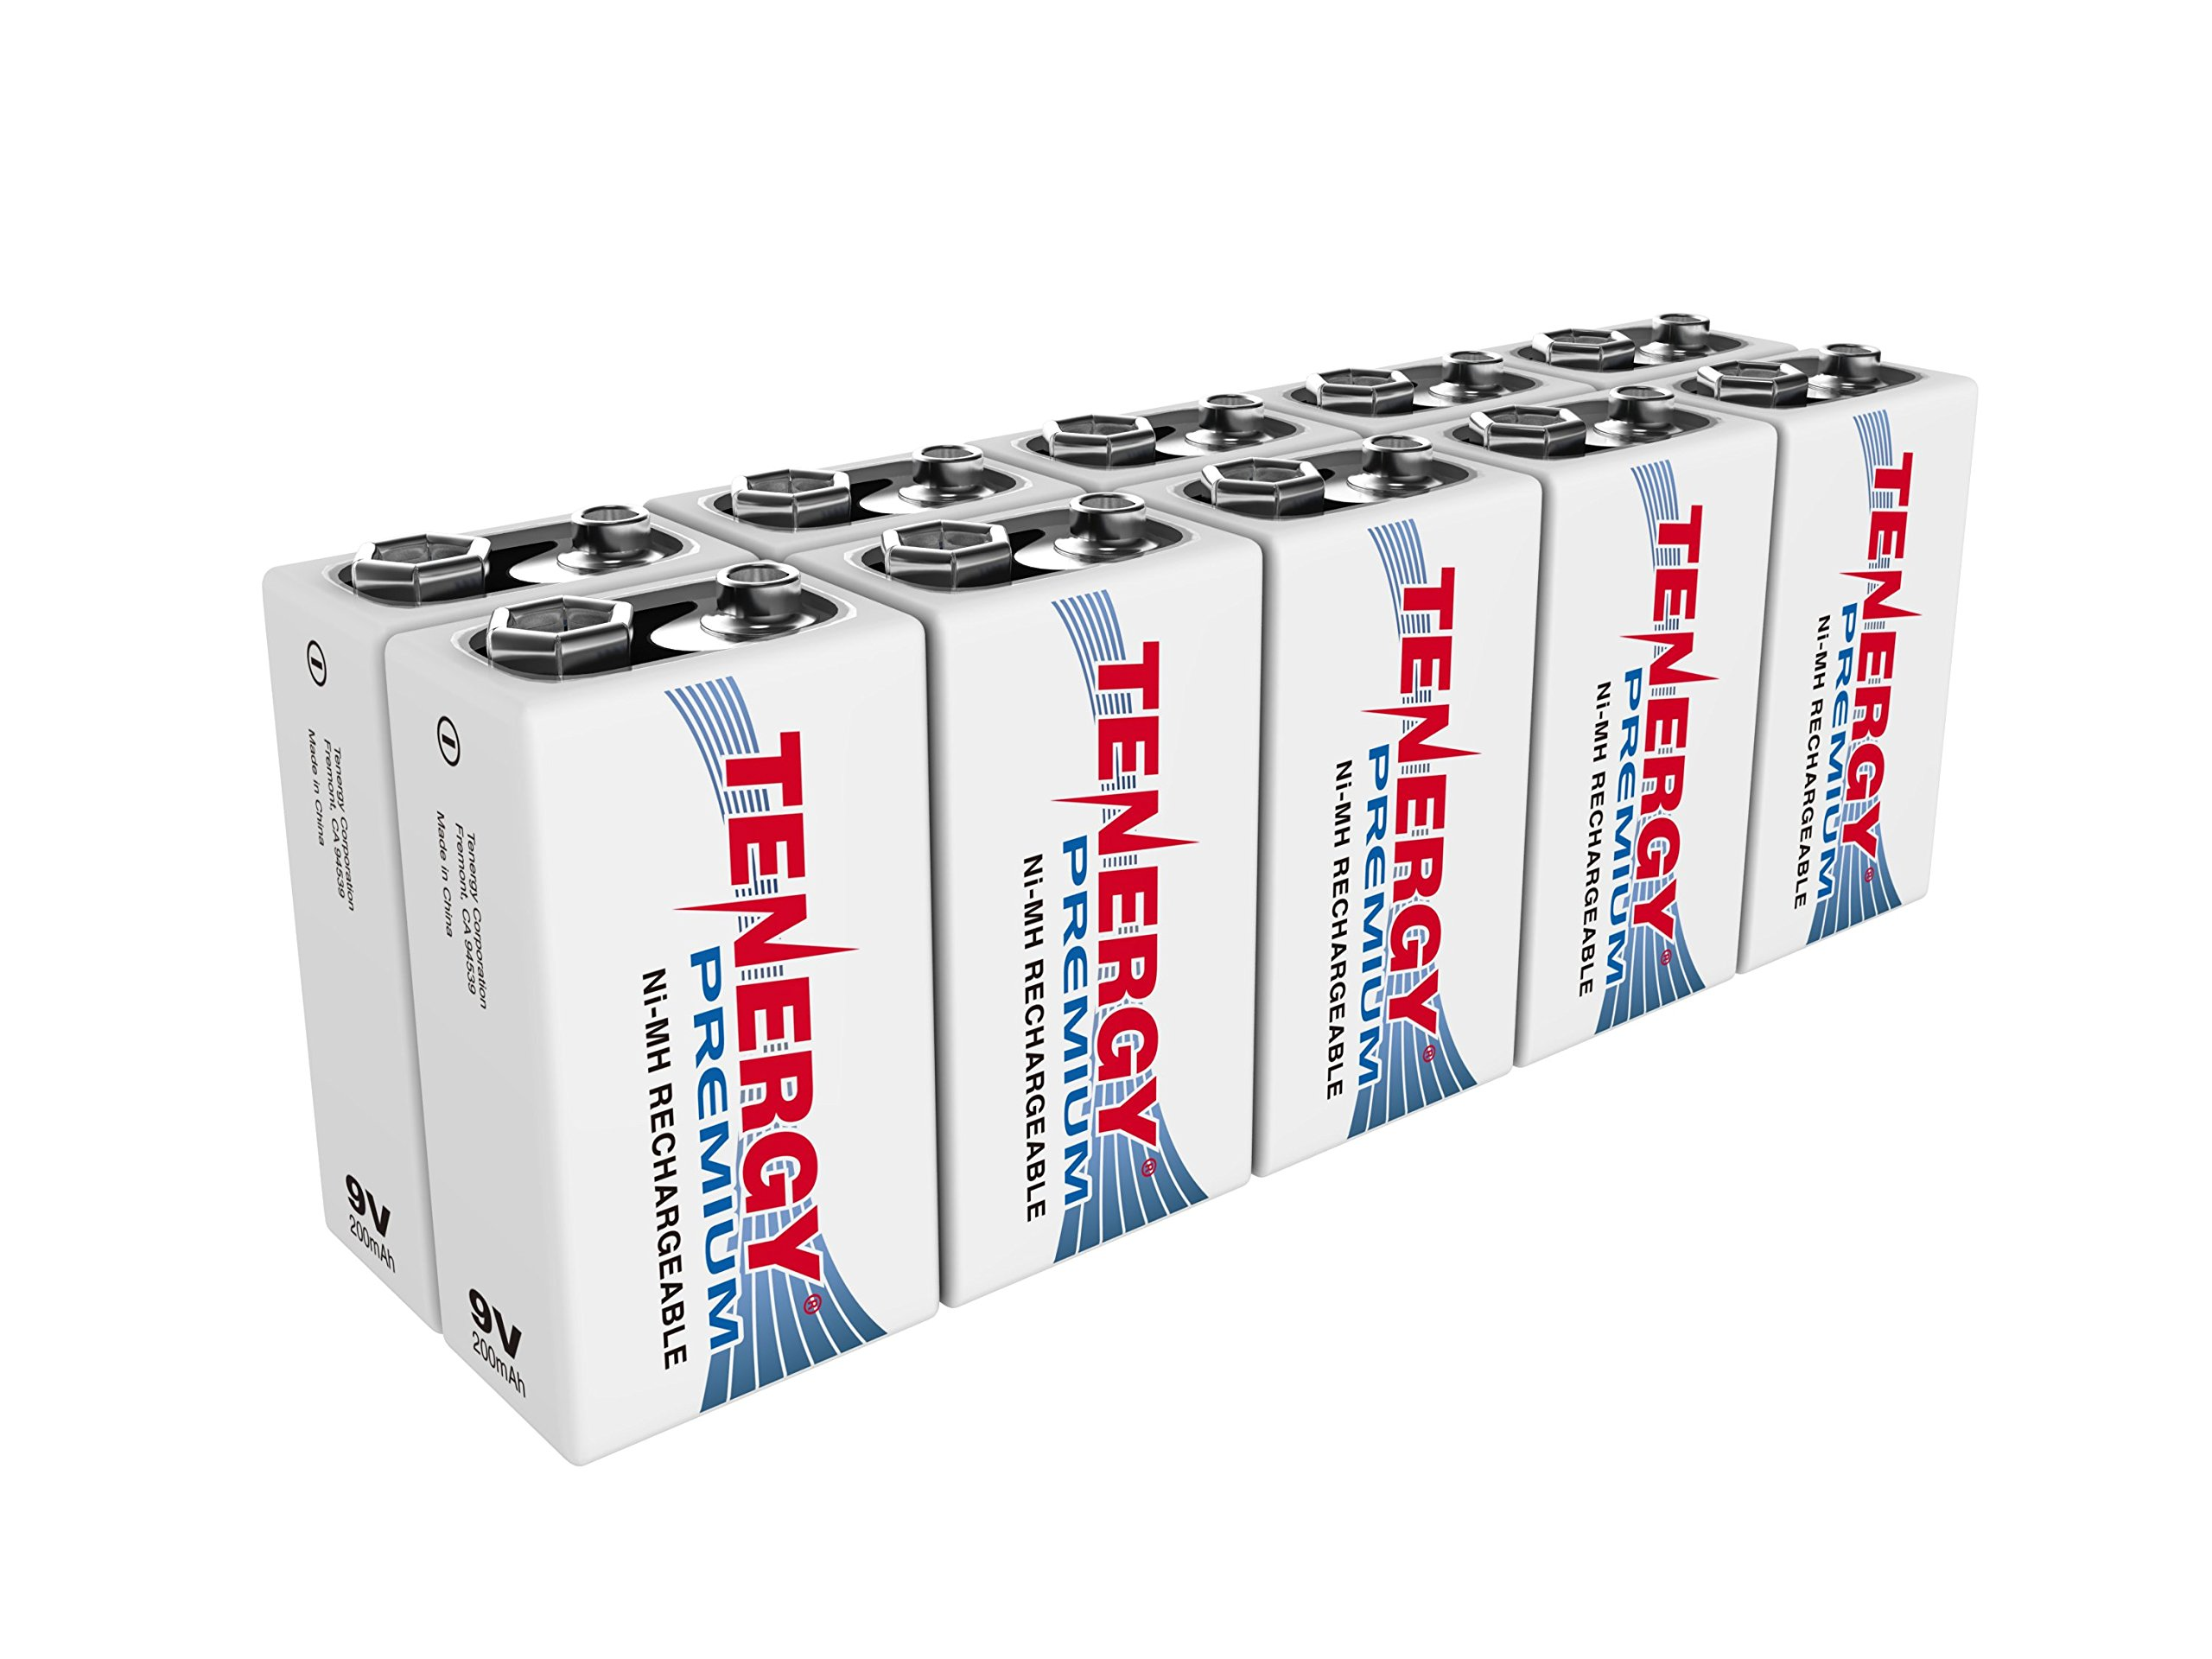 Tenergy Premium 9V Batteries Rechargeable High Drain 200mAh NiMH 9V Square Battery for Smoke Alarm/Detector, 10 Pack